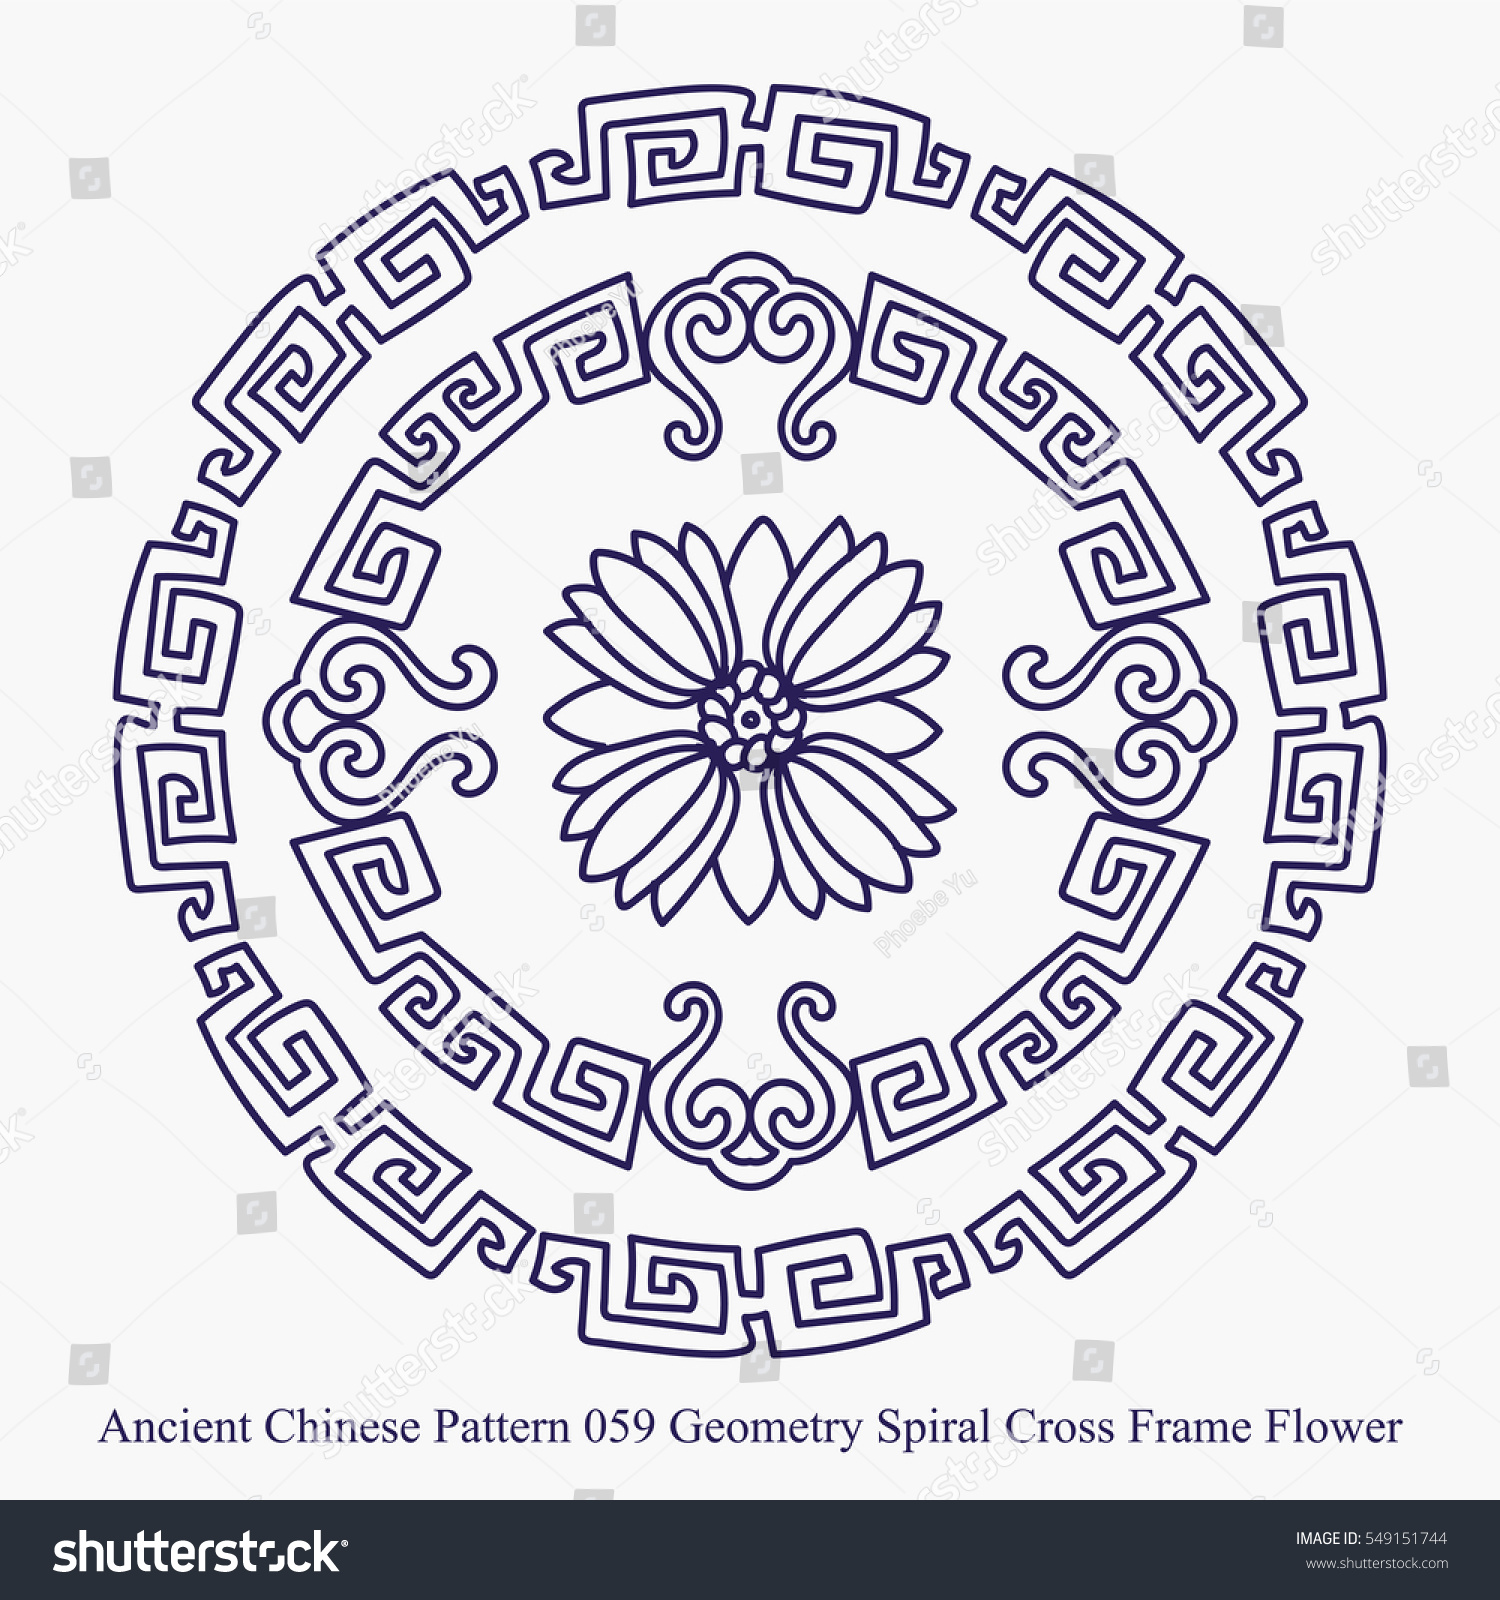 Ancient chinese designs and patterns